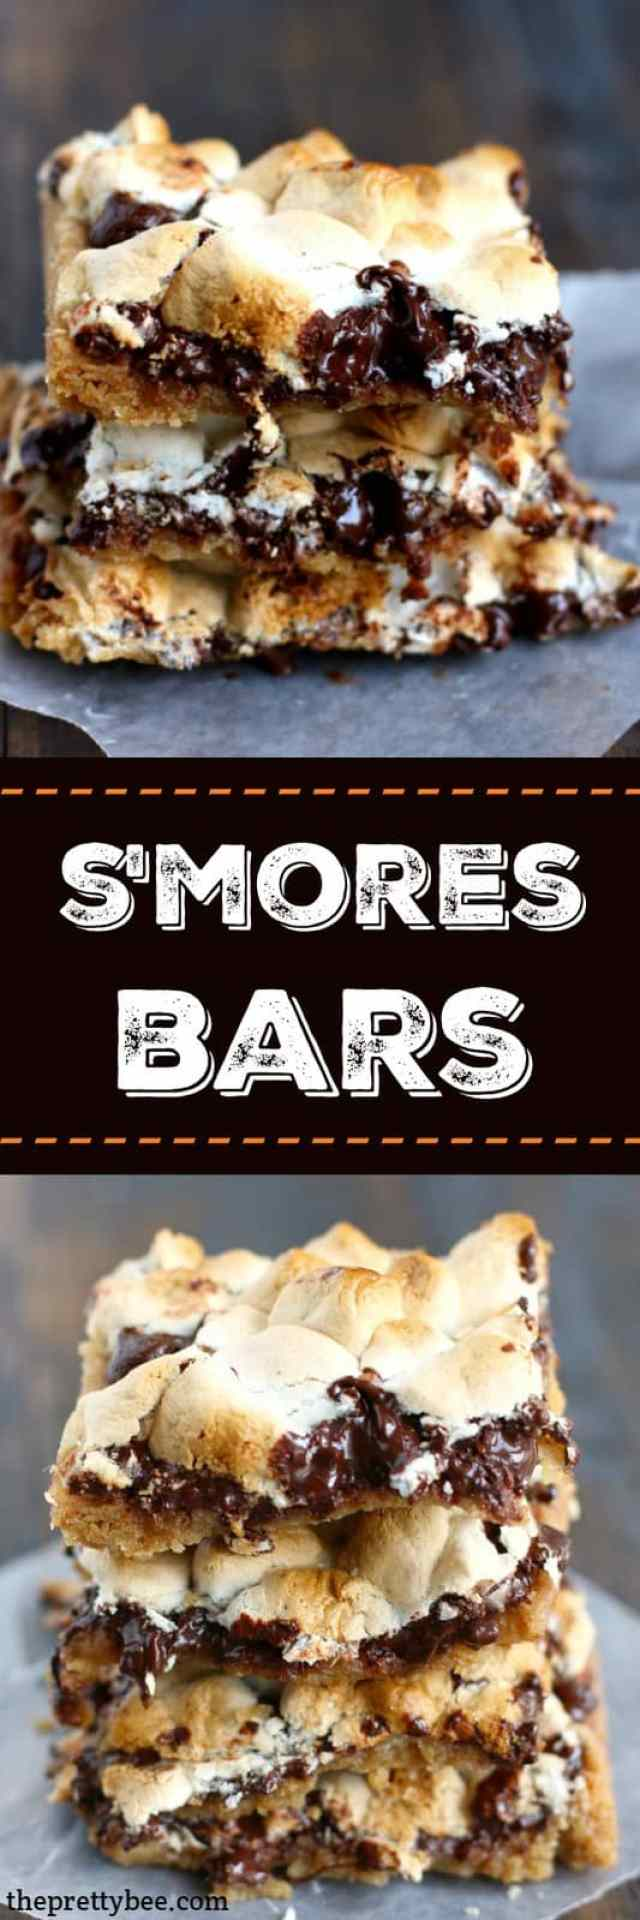 Melty dark chocolate, toasted marshmallows, a graham cracker crust...these s'mores bars have it all!